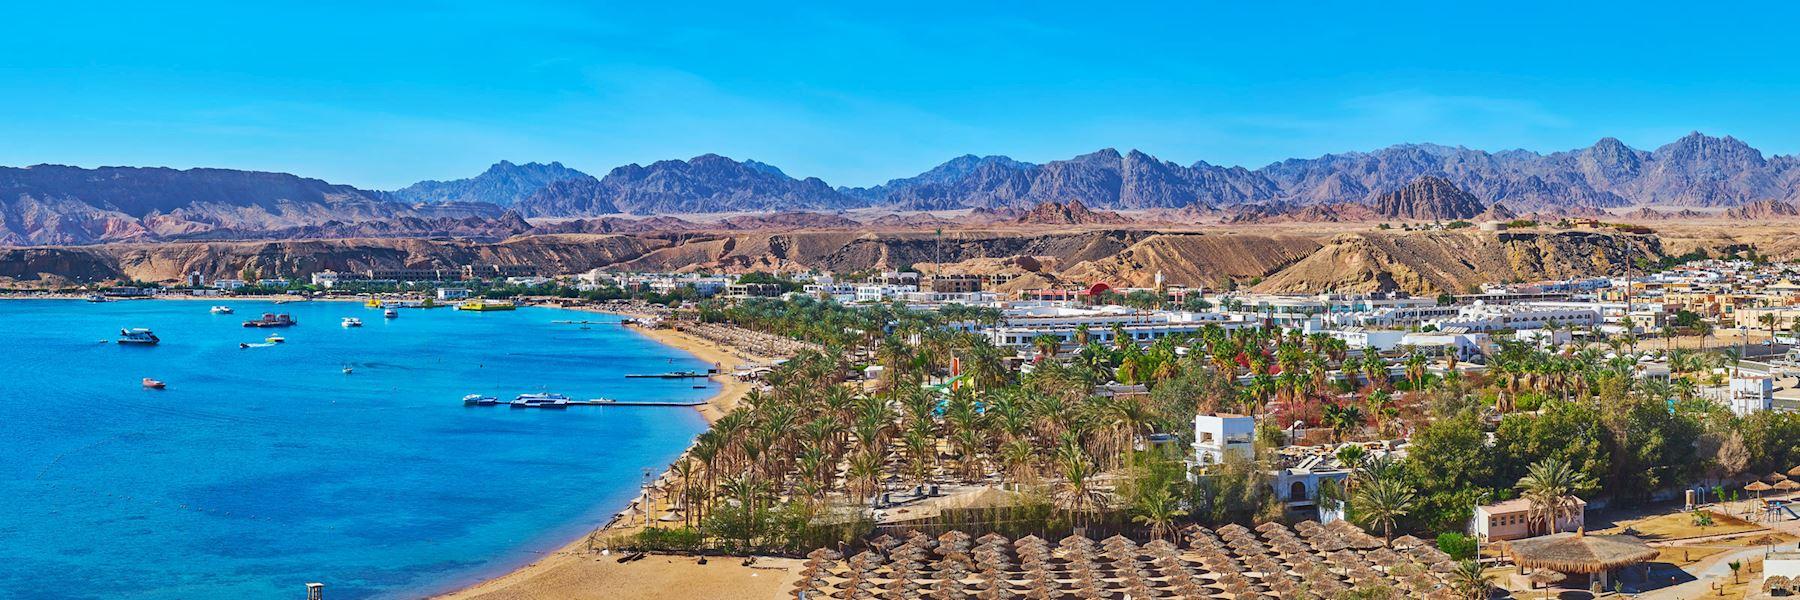 Visit the Red Sea, Egypt